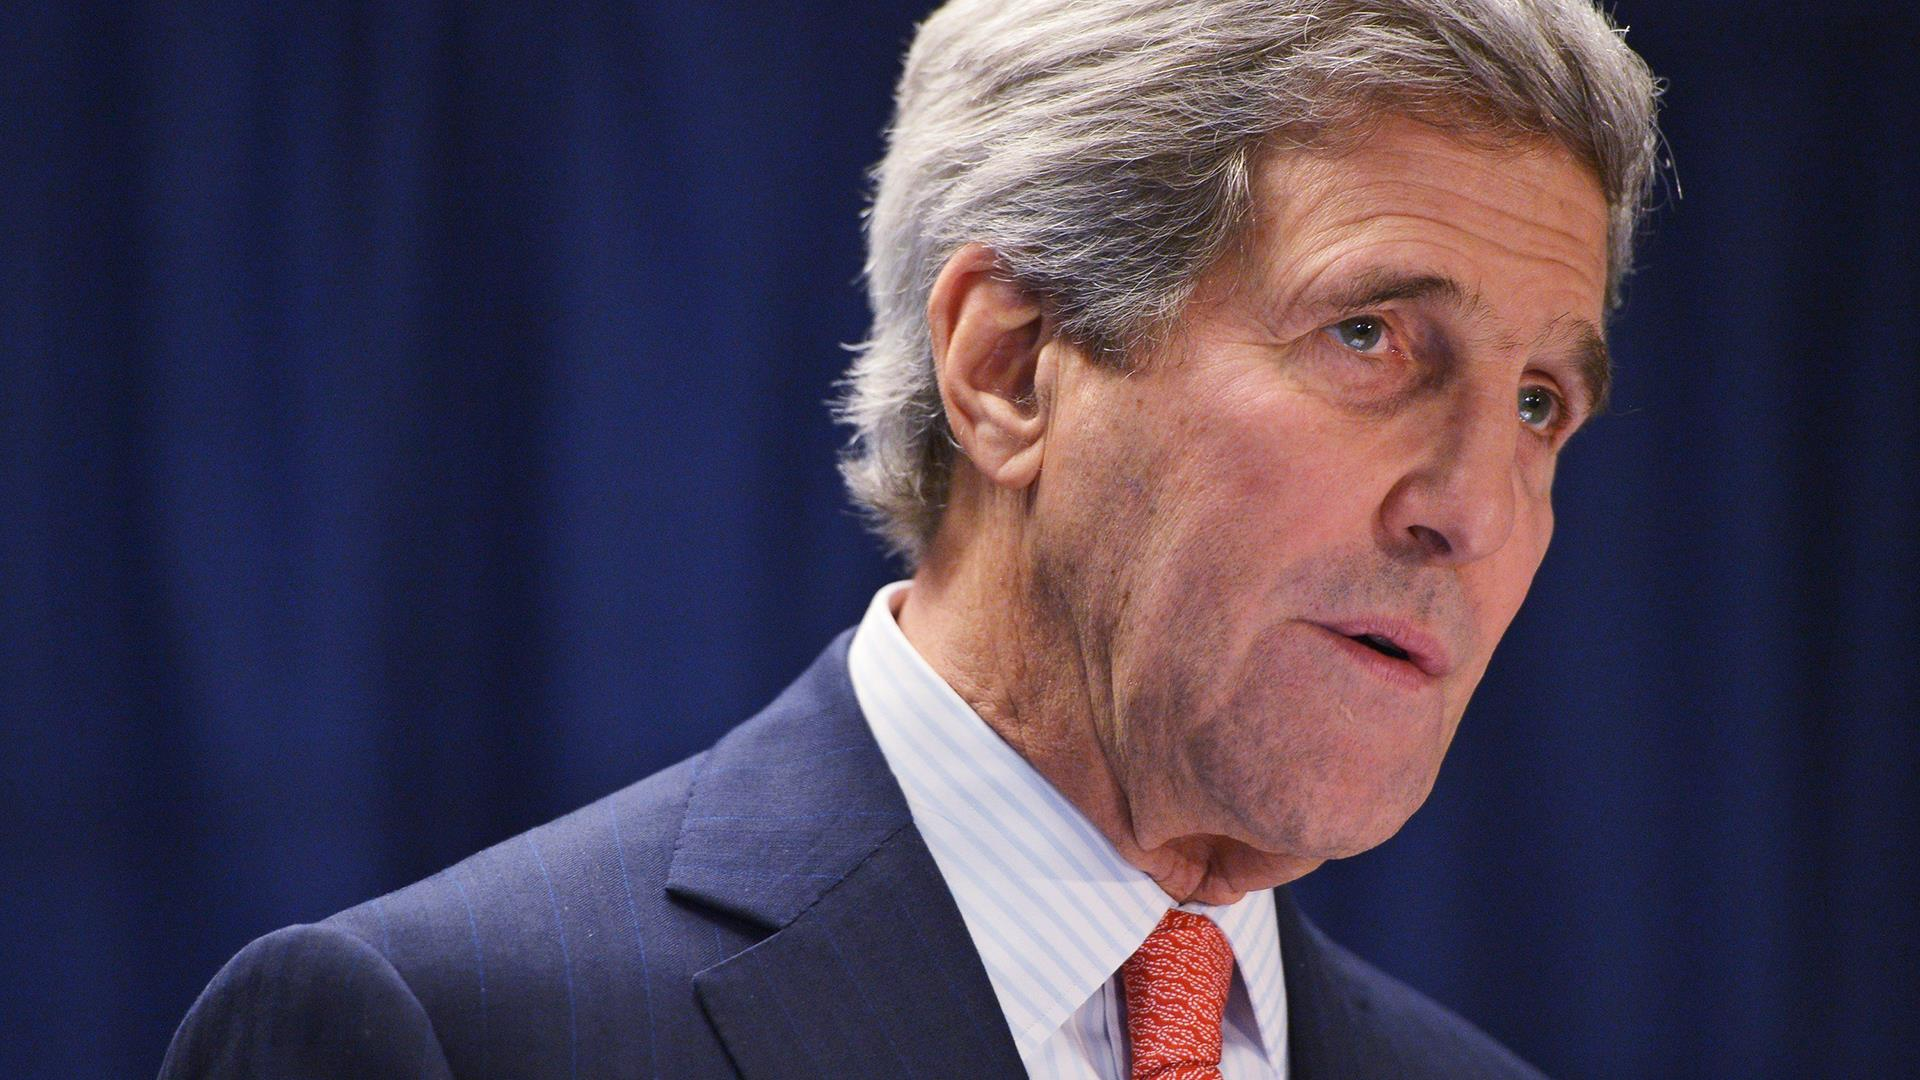 LIVE VIDEO: Sec. Kerry speaks at U.S....